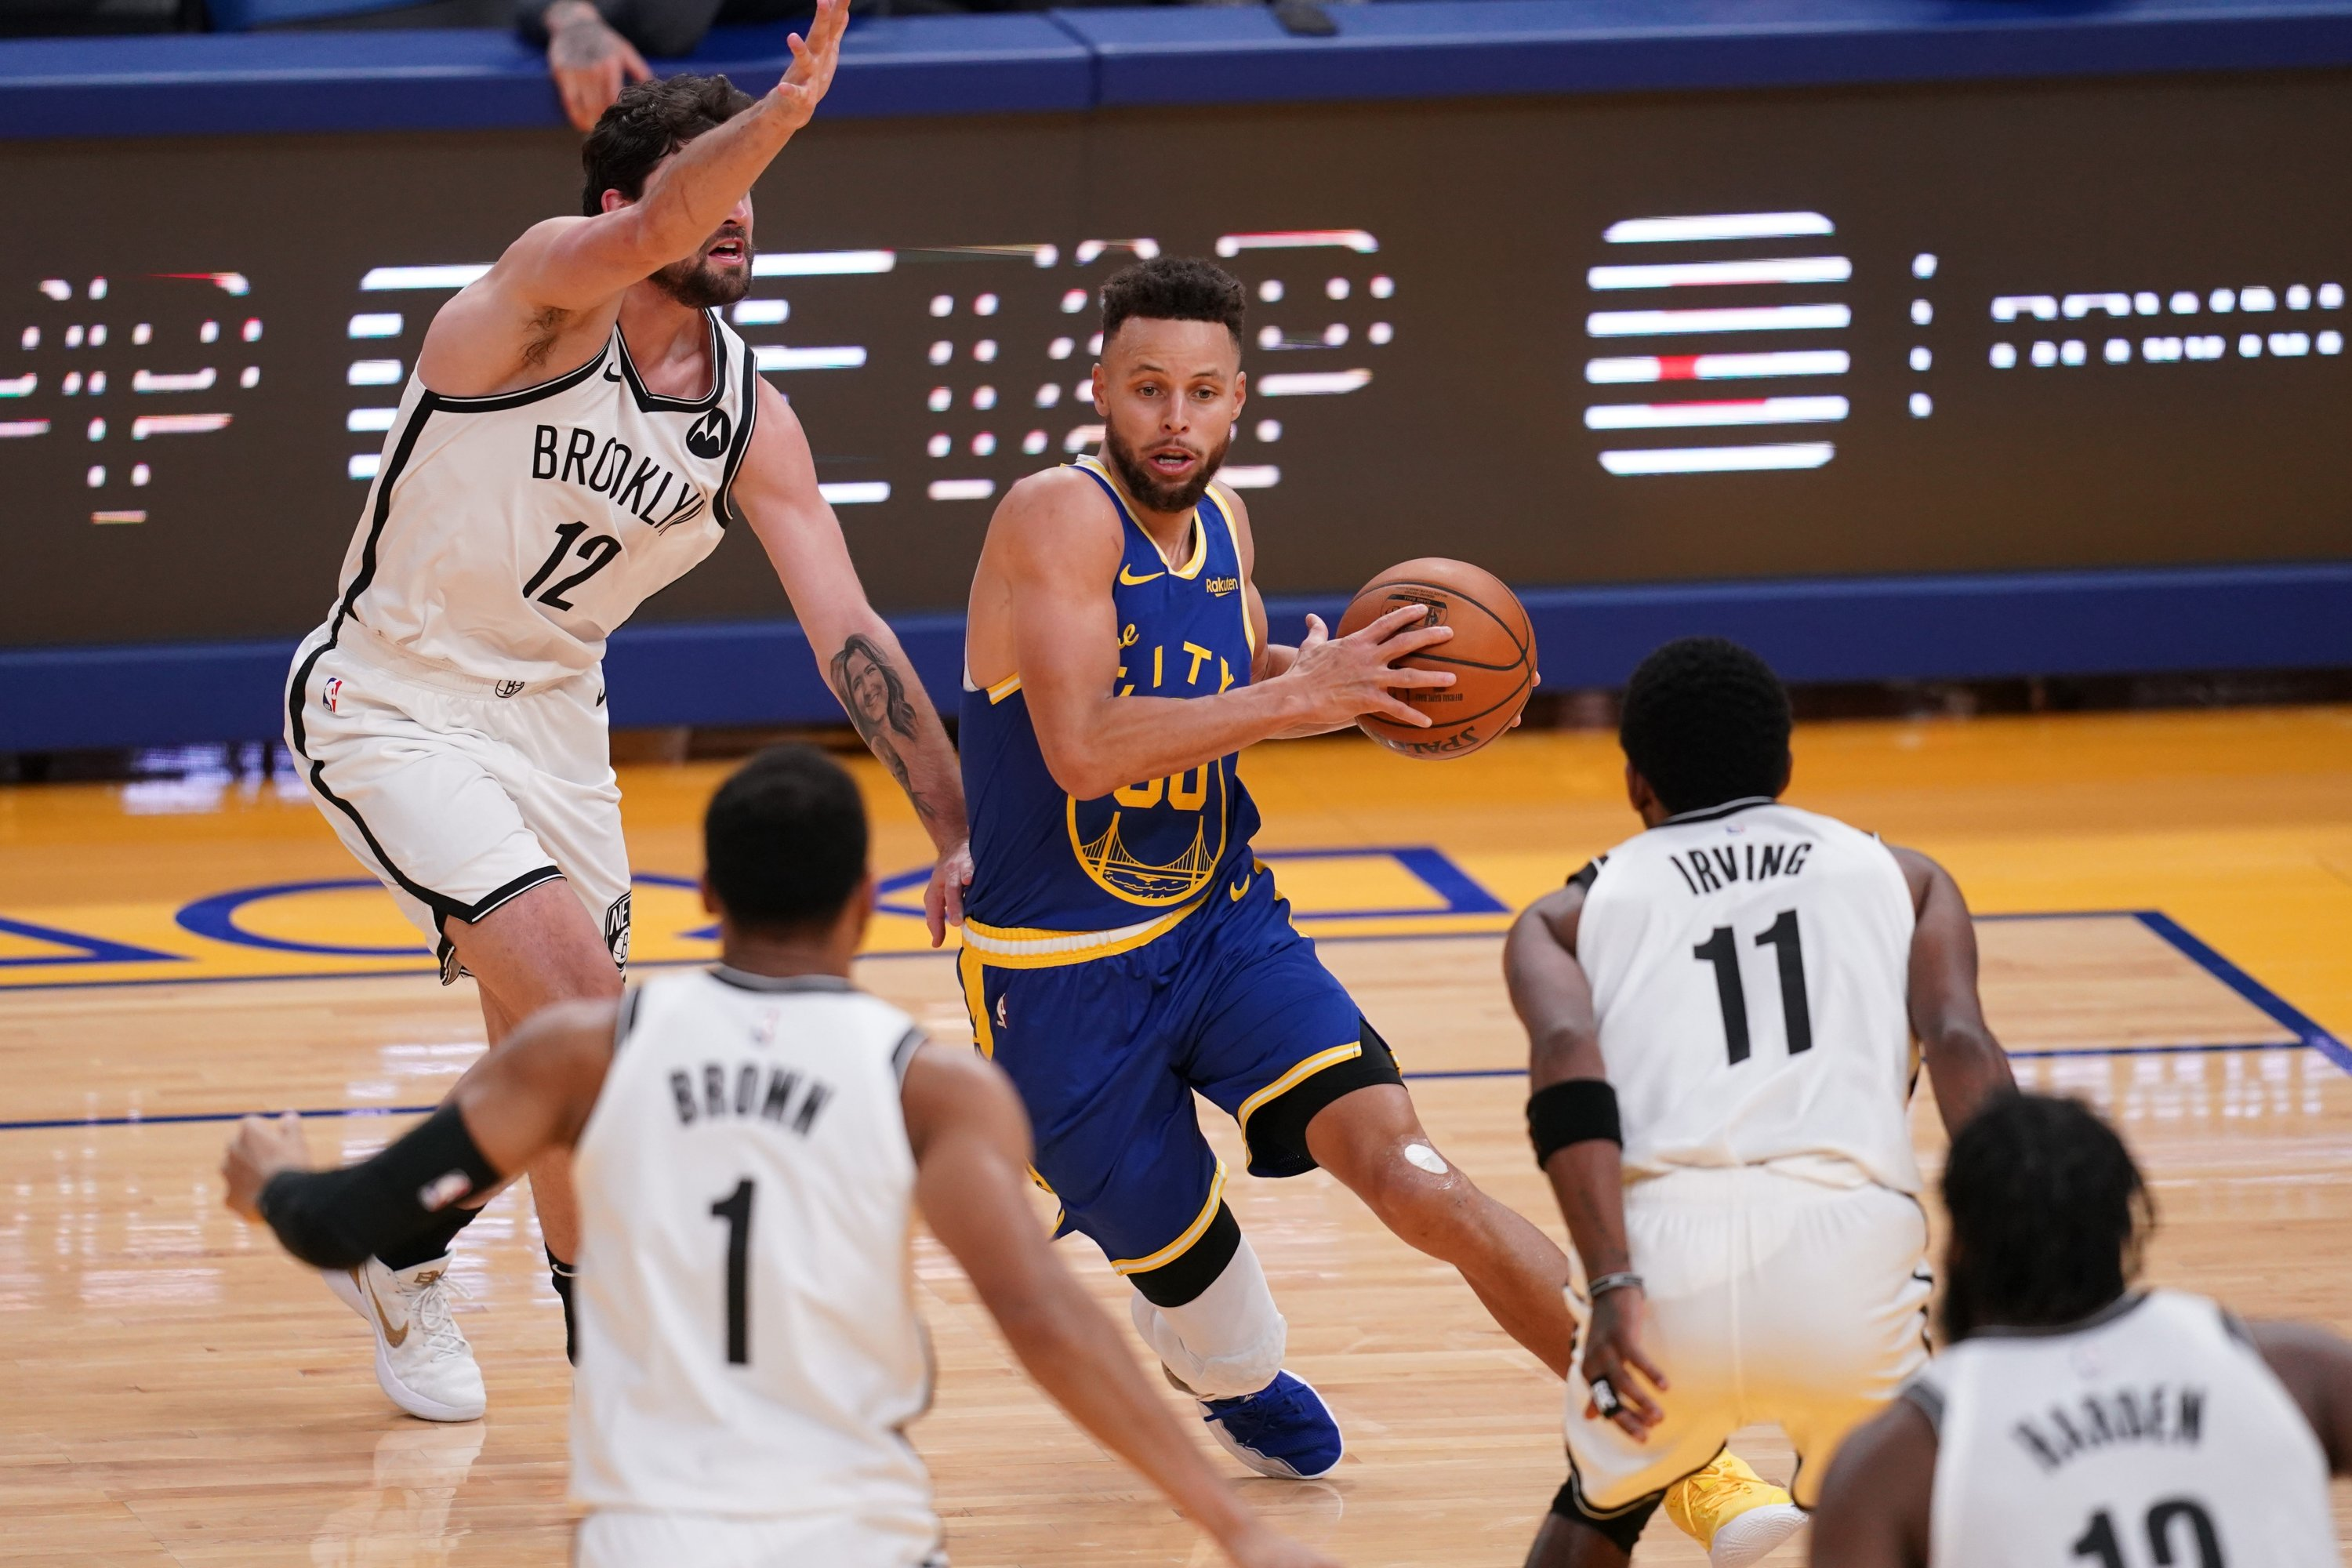 Golden State Warriors guard Stephen Curry (C) passes the ball against the Brooklyn Nets at the Chase Center, San Francisco, California, Feb. 13, 2021. (Reuters Photo)